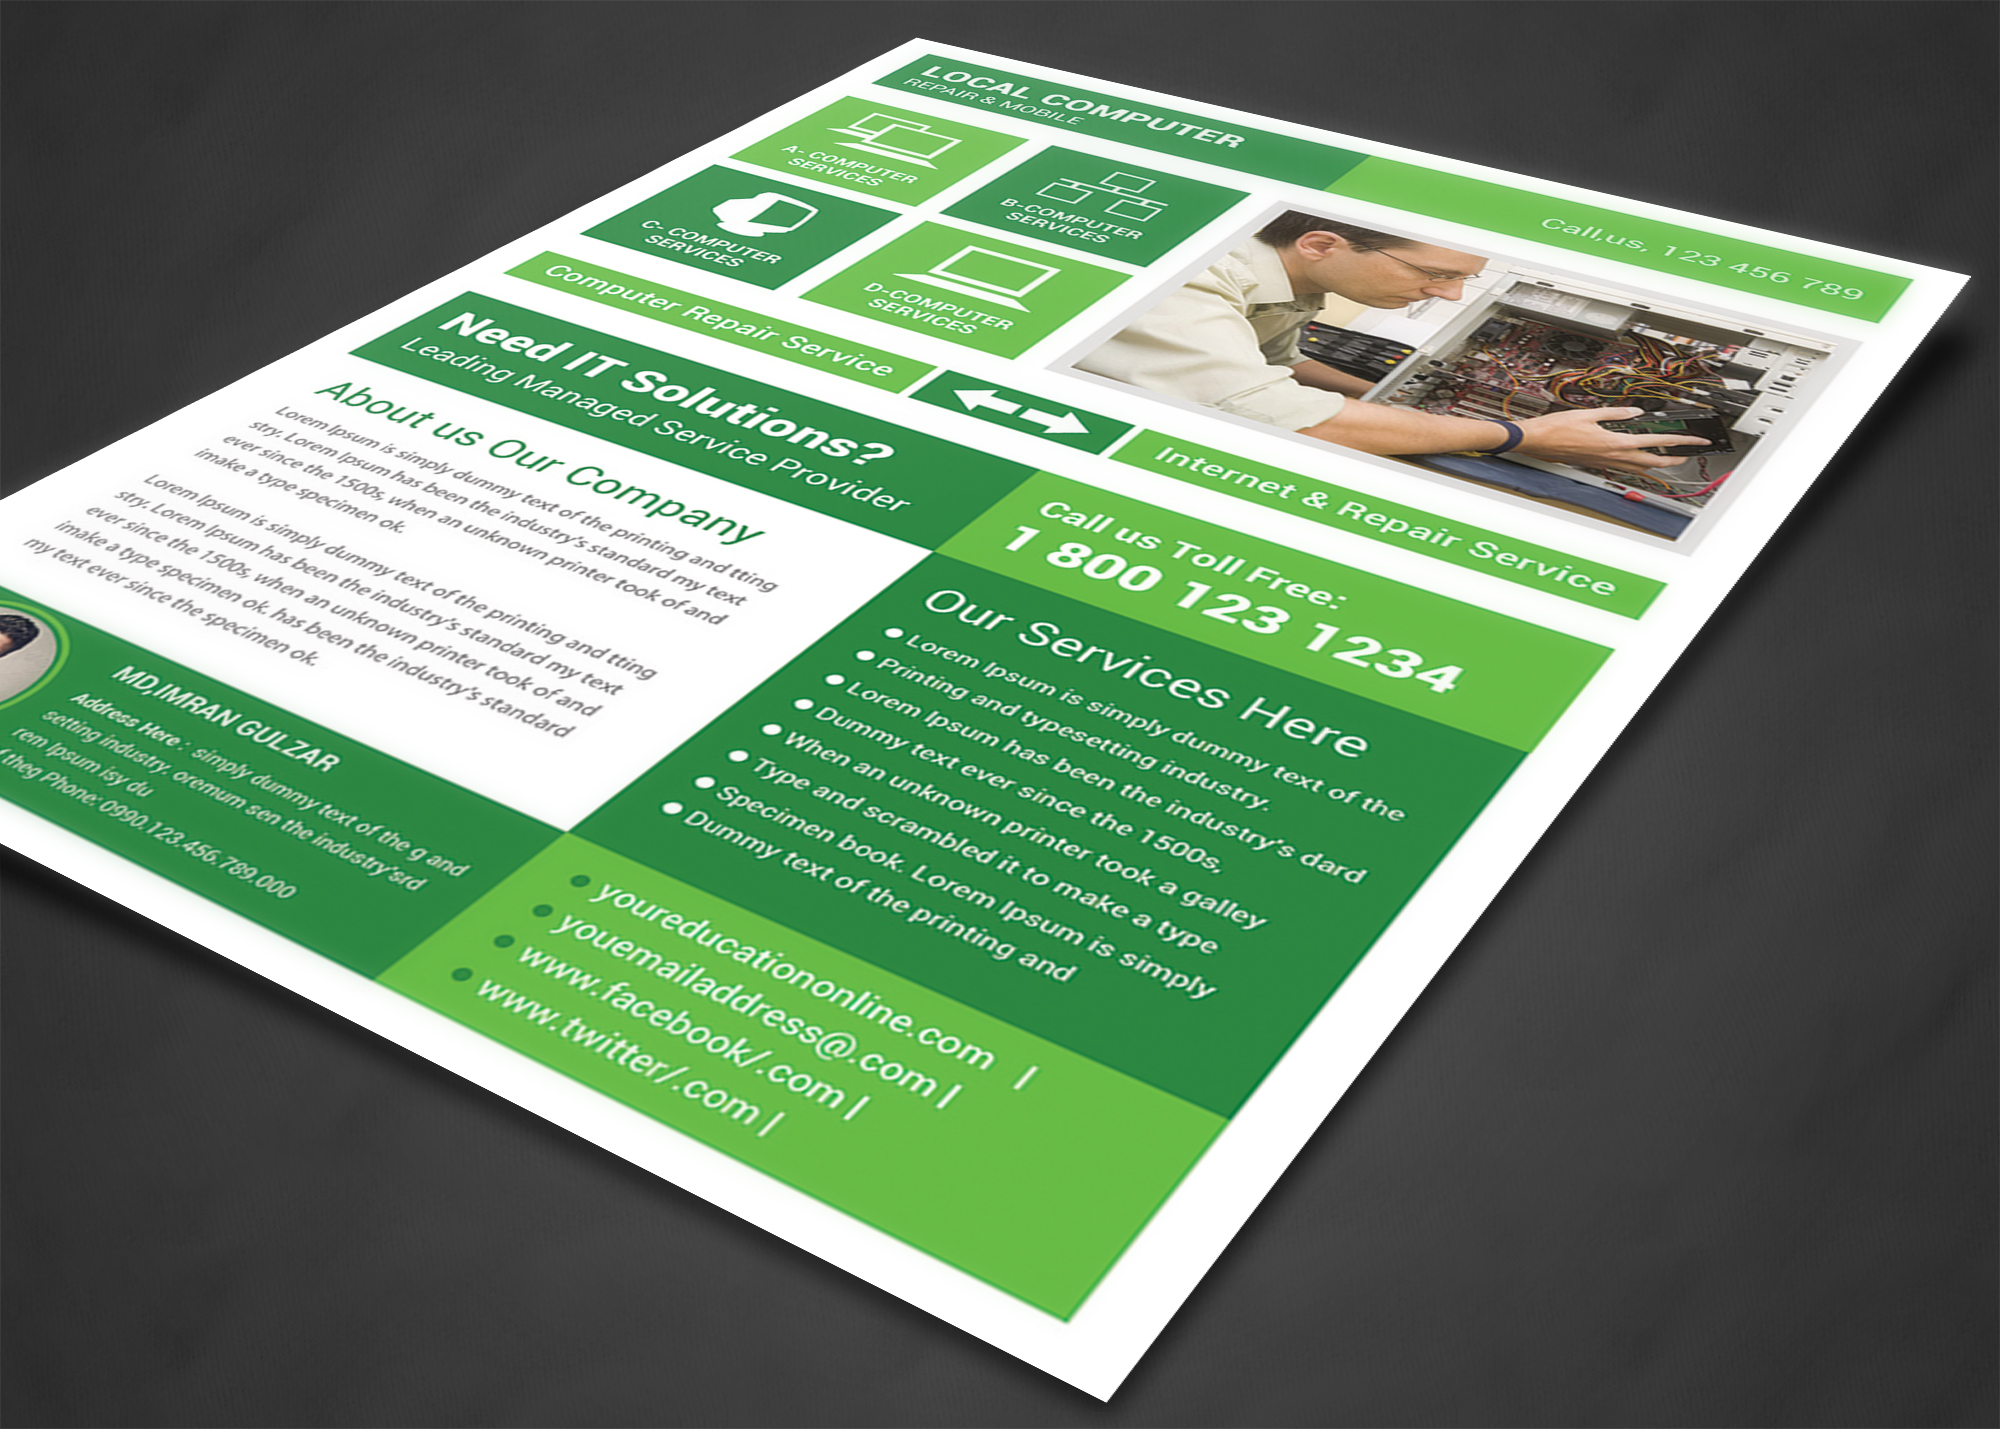 create amazing computer repair flyers for your business by customizing our easy to use templates add your content and be done in minutes free downloads